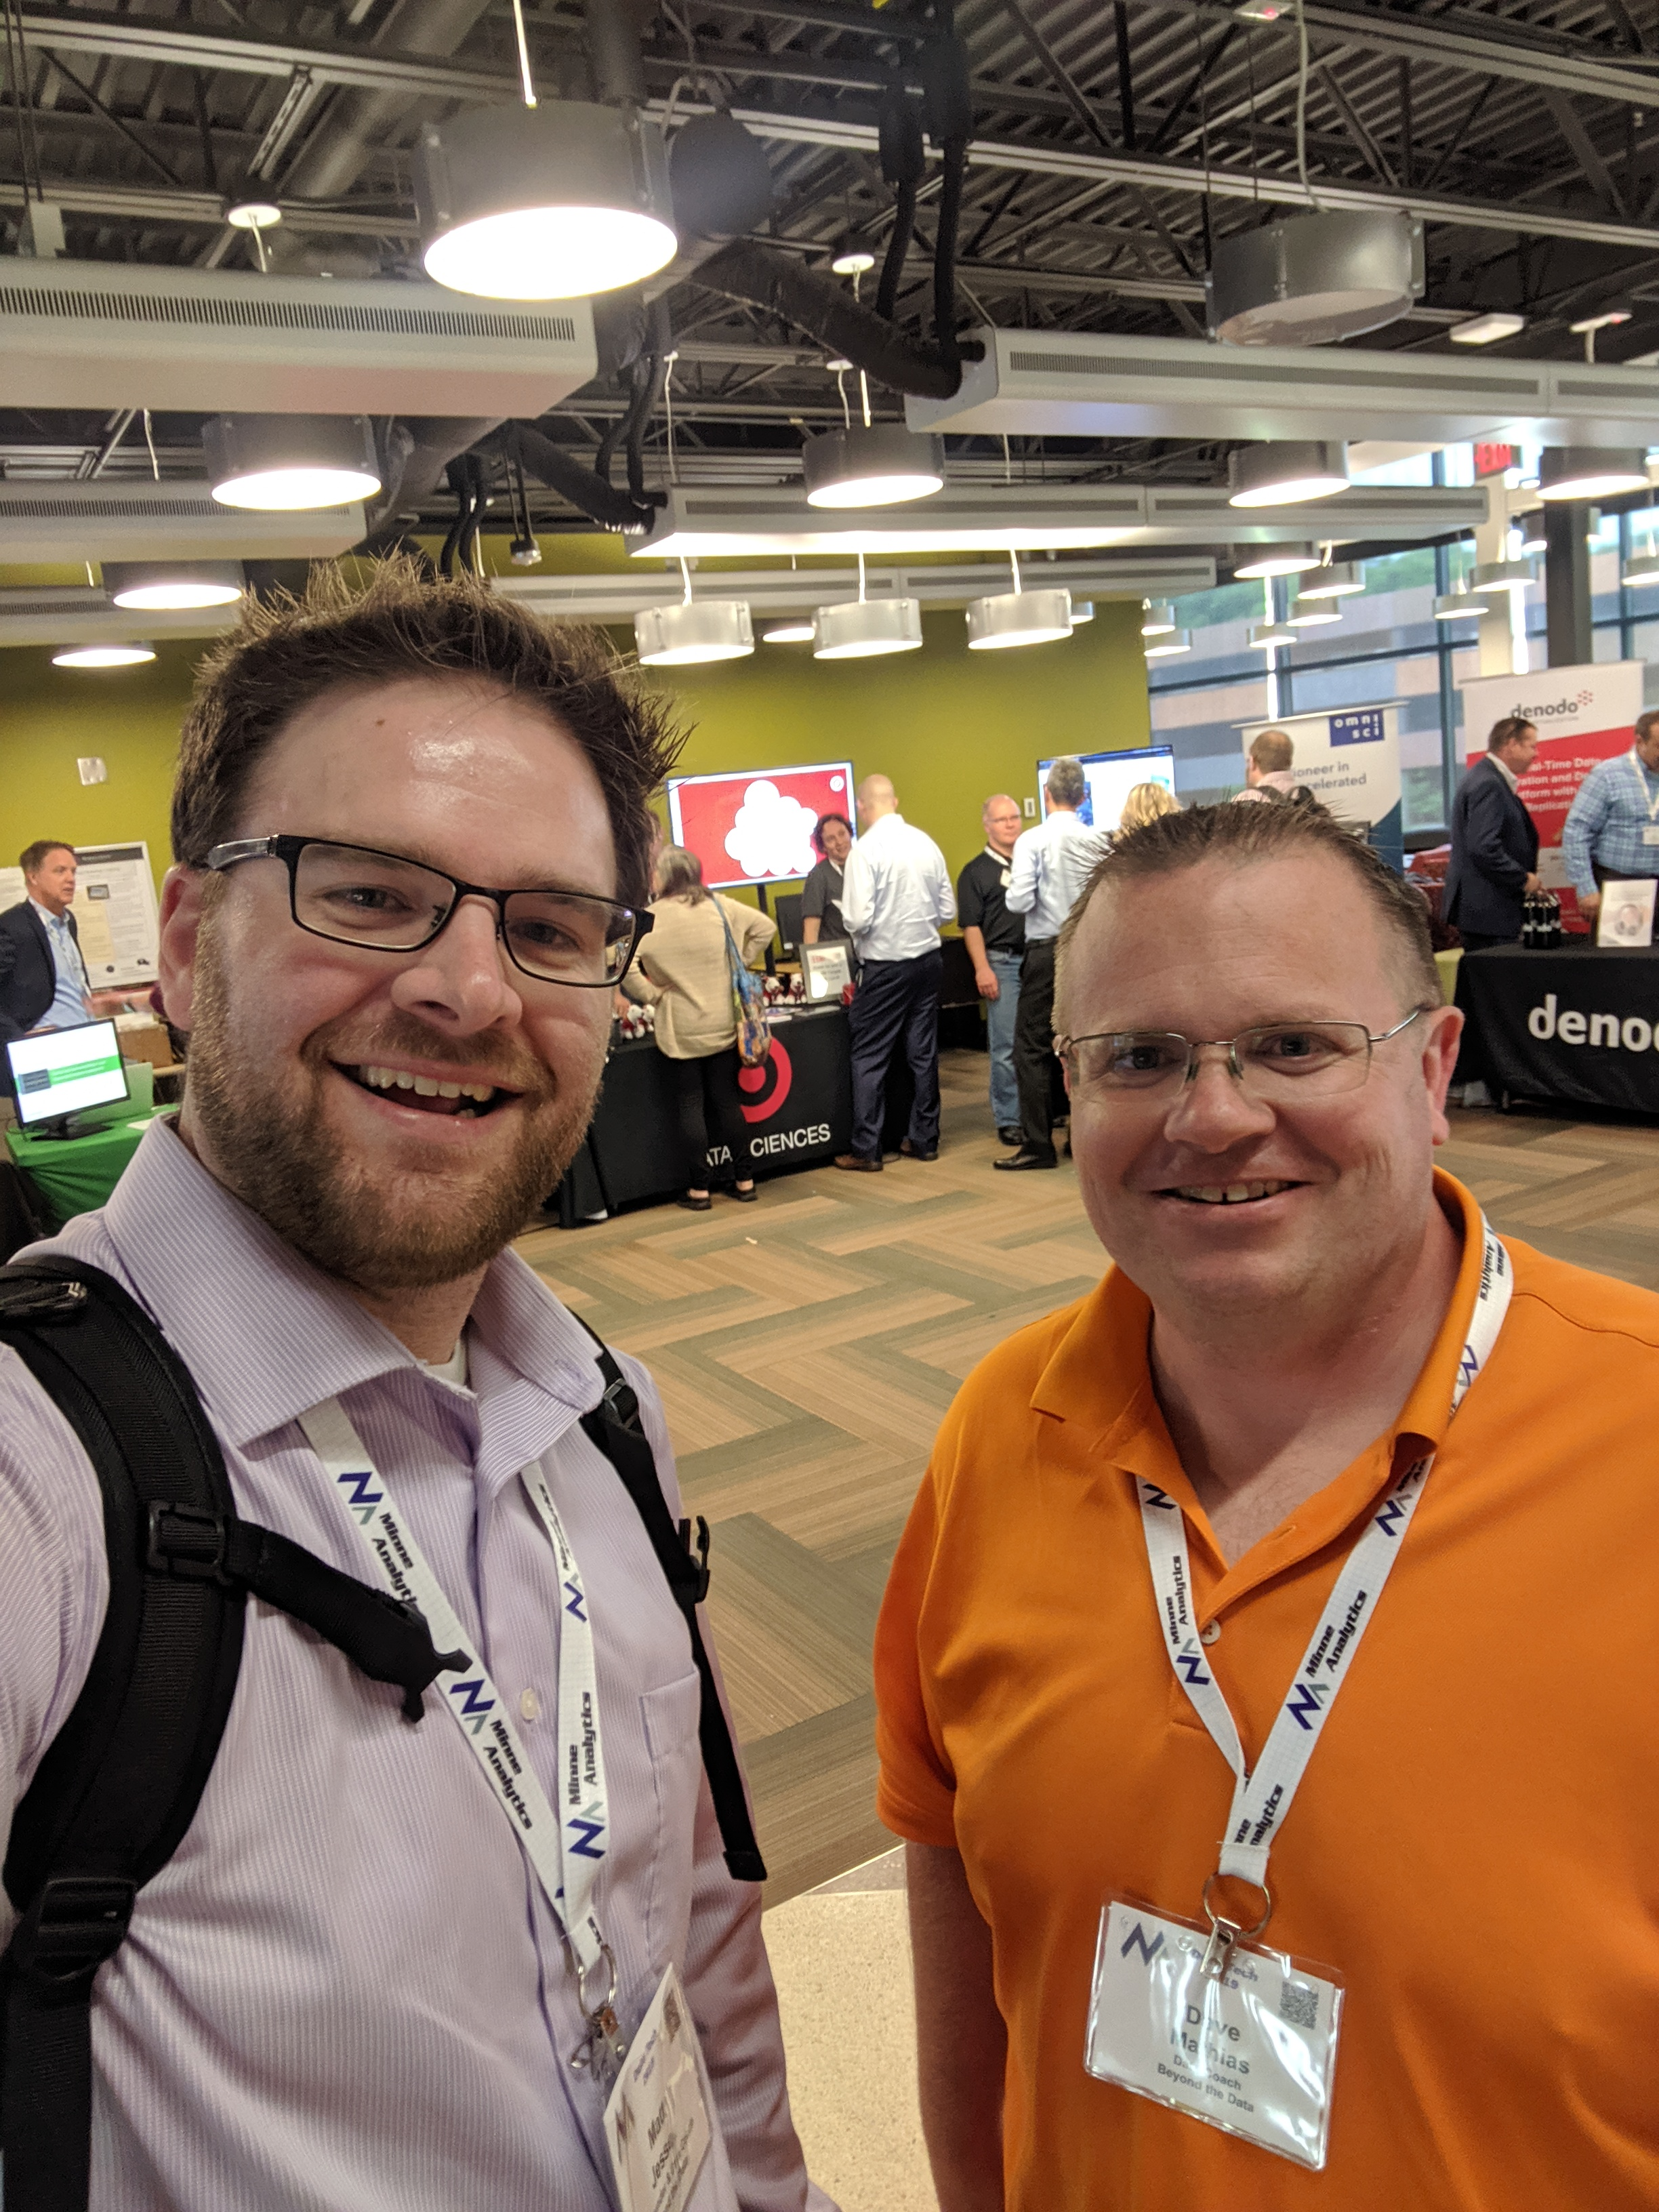 Matt and Dave checking out the vendor hall at Minneanalytics Data Tech 2019